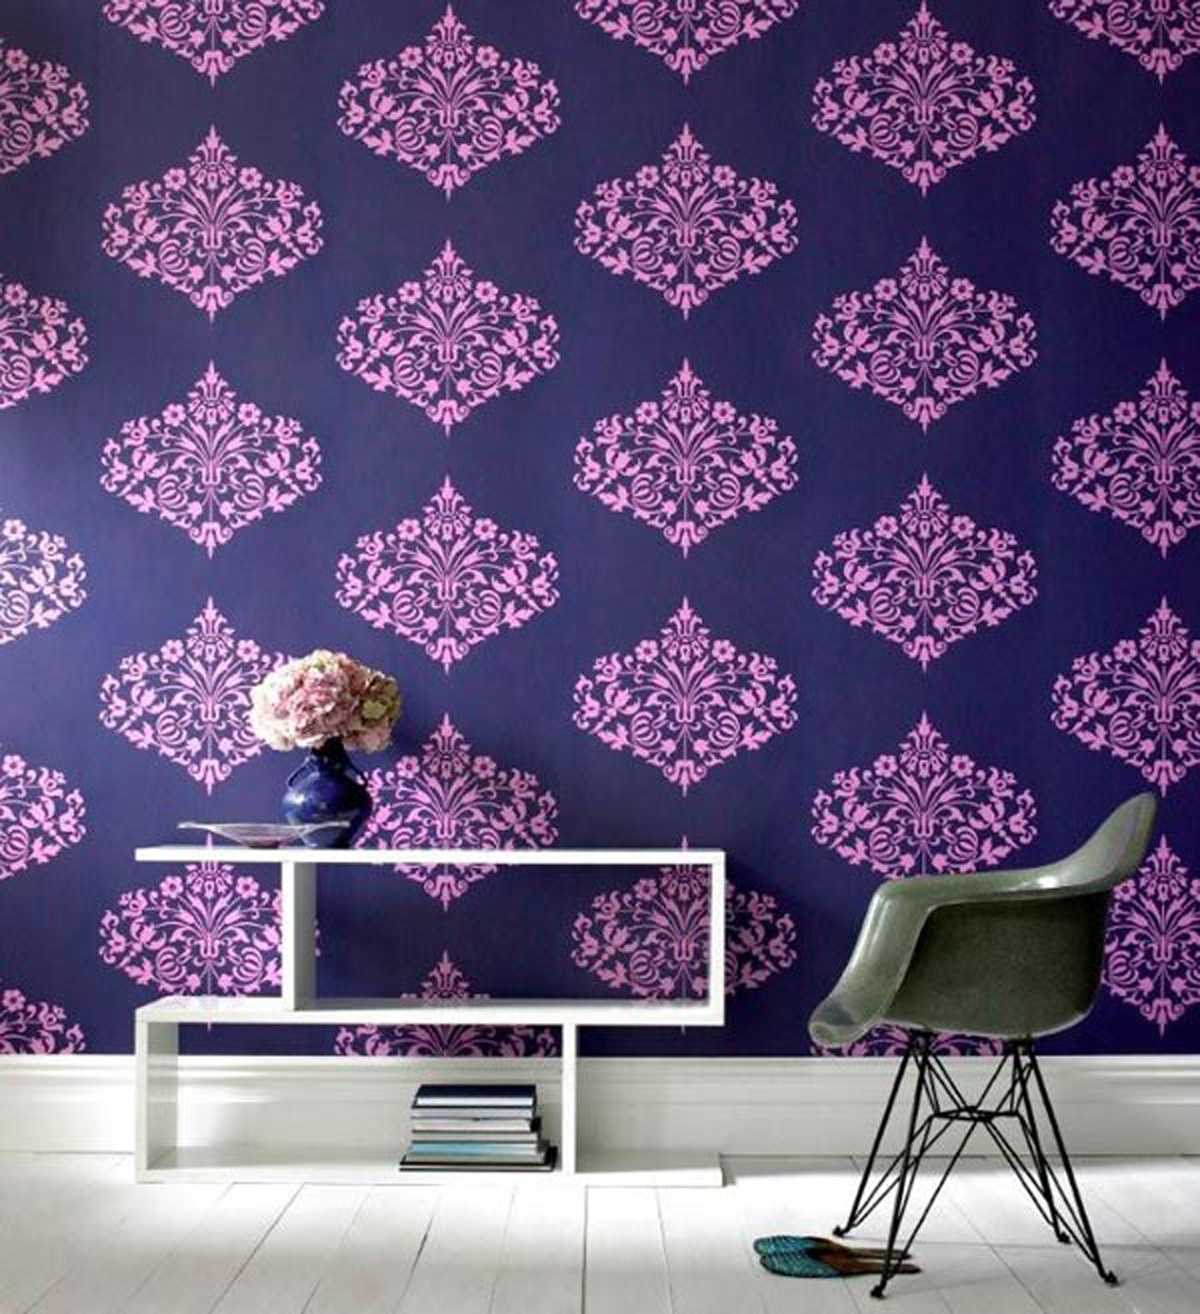 luxury wall covering paper designs - Iroonie.com